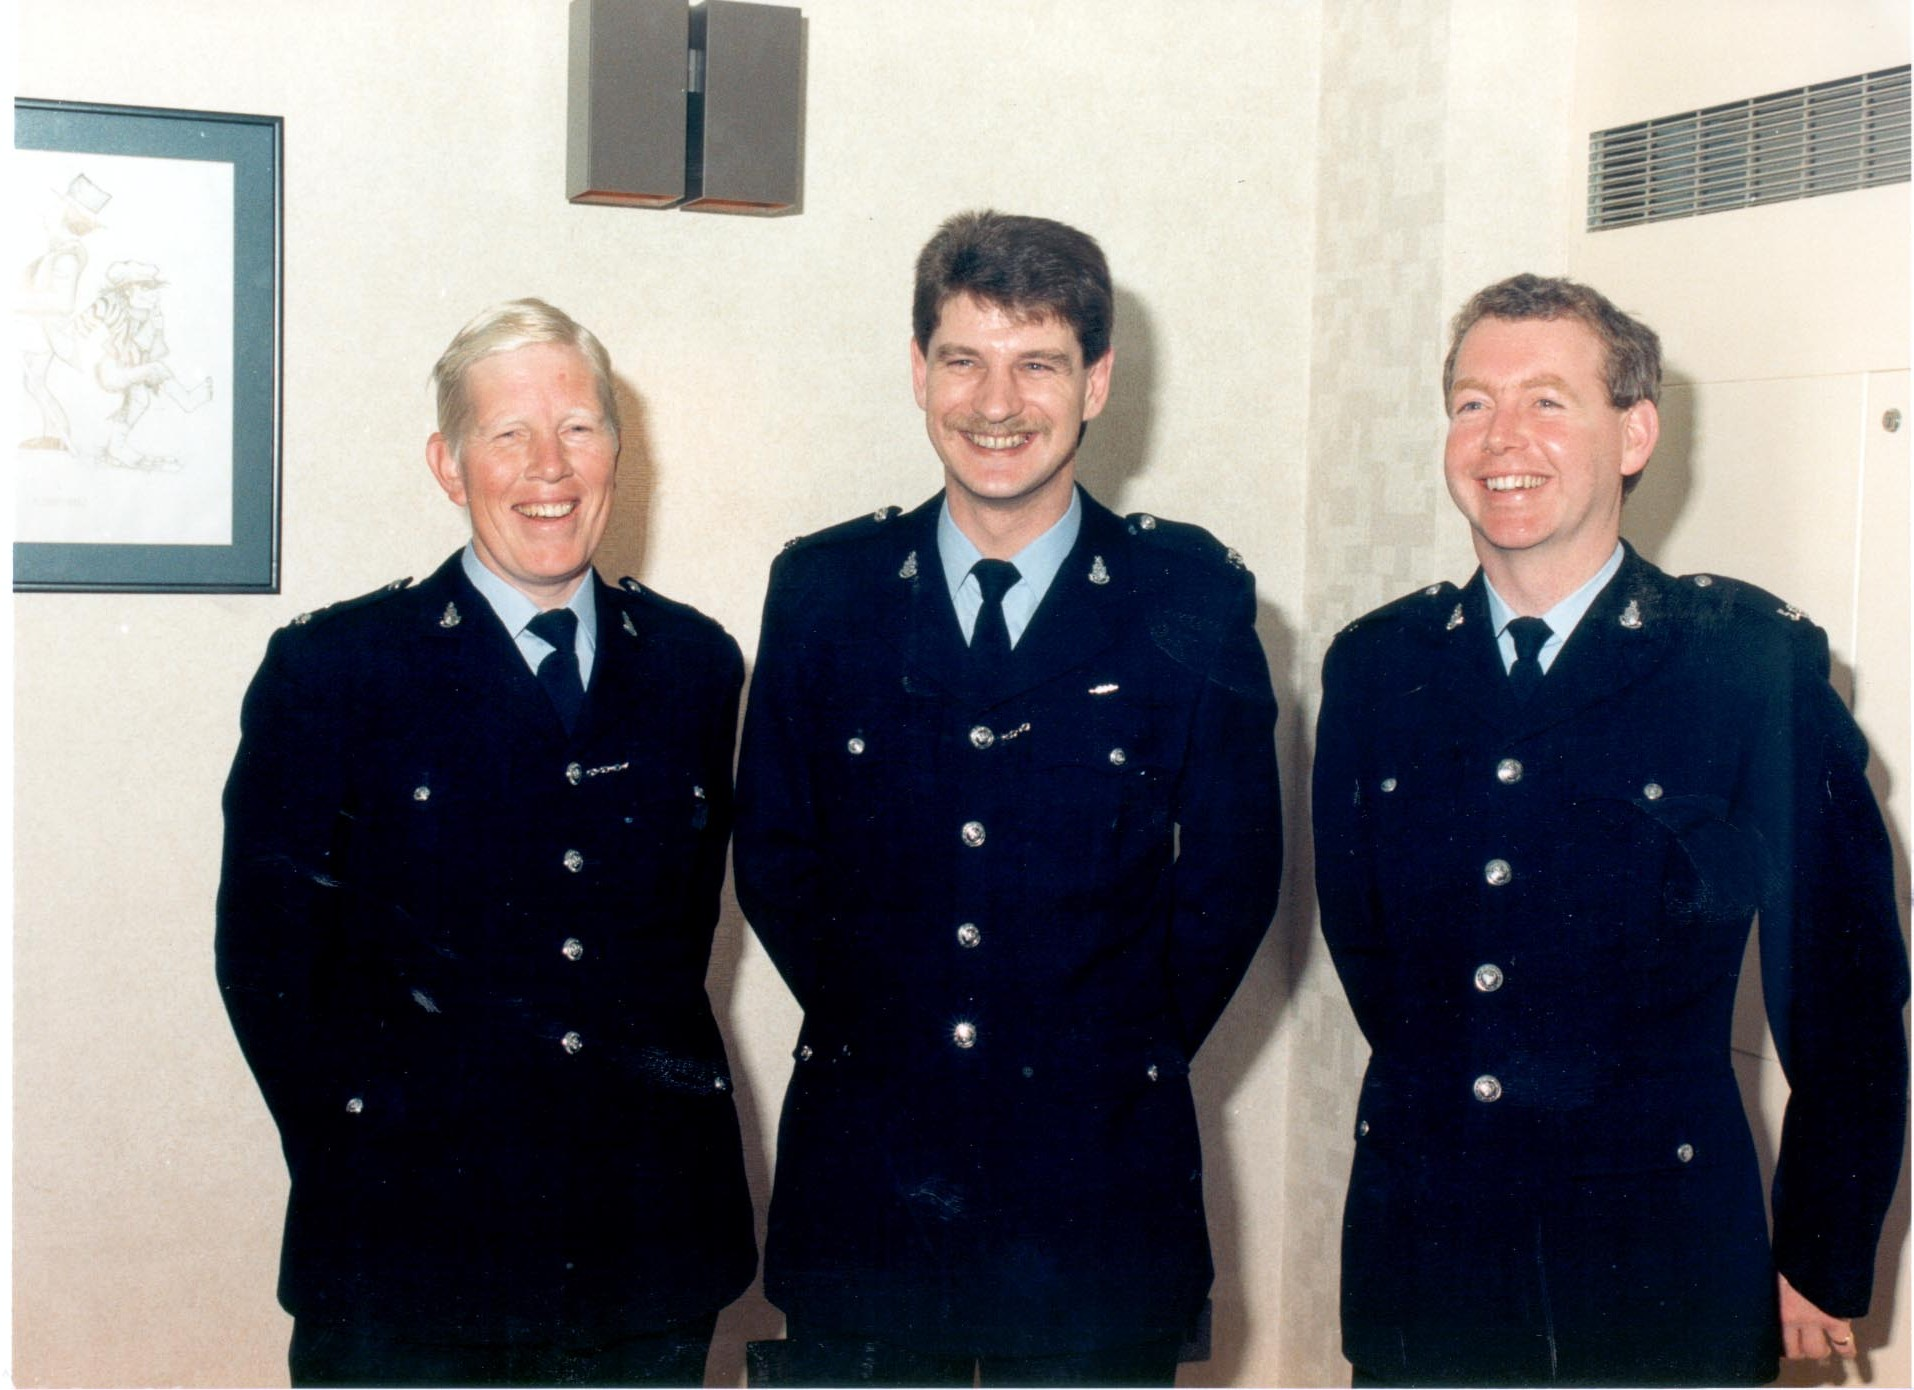 Presentation of bravery awards. Police Constable Bill Matthews after receiving his bravery award for the Gloucester siege with two colleagues involved in the incident 1987. Left to right Police Constables Anthony Webb, Bill Matthews, Patrick Price. (Gloucestershire Police Archives URN 485)